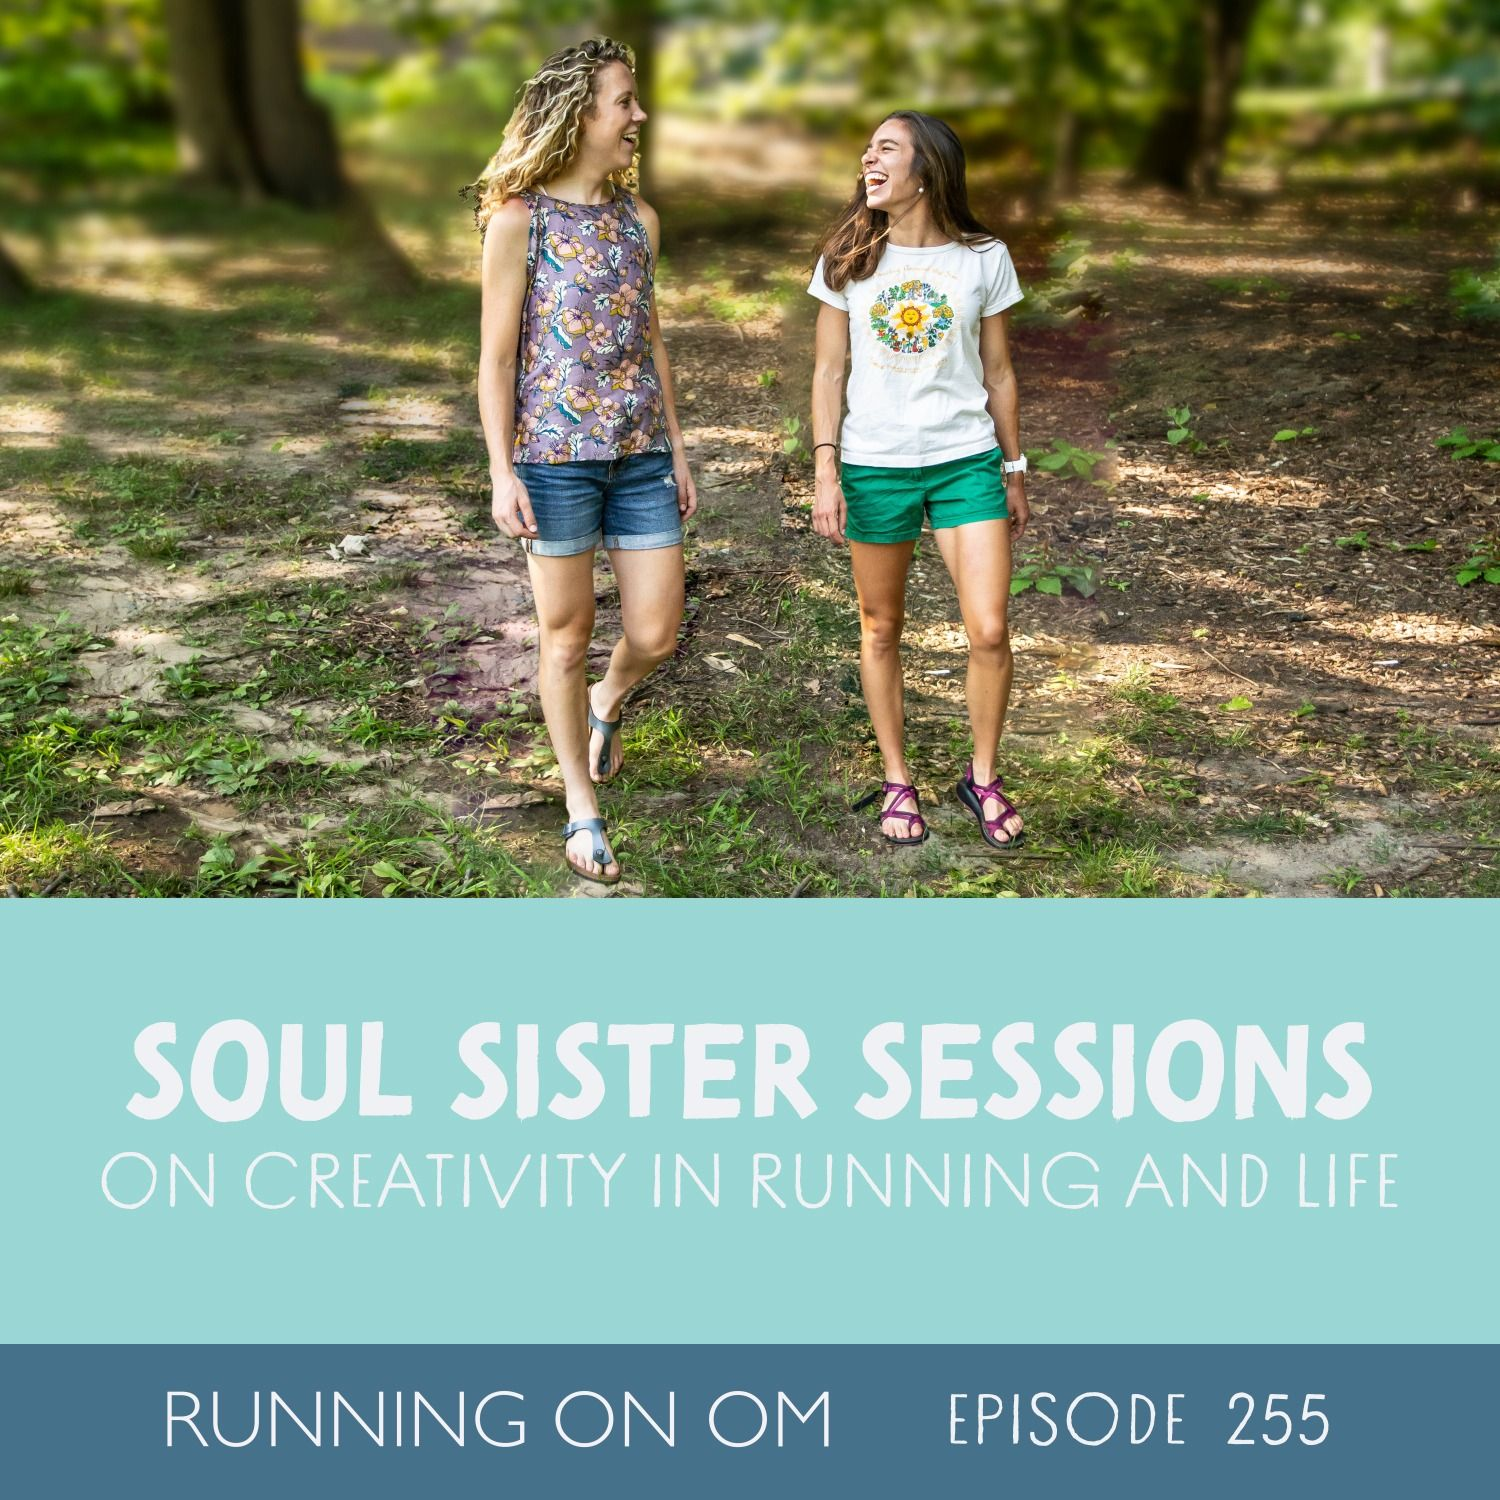 Soul Sister Sessions on Creativity in Running and Life